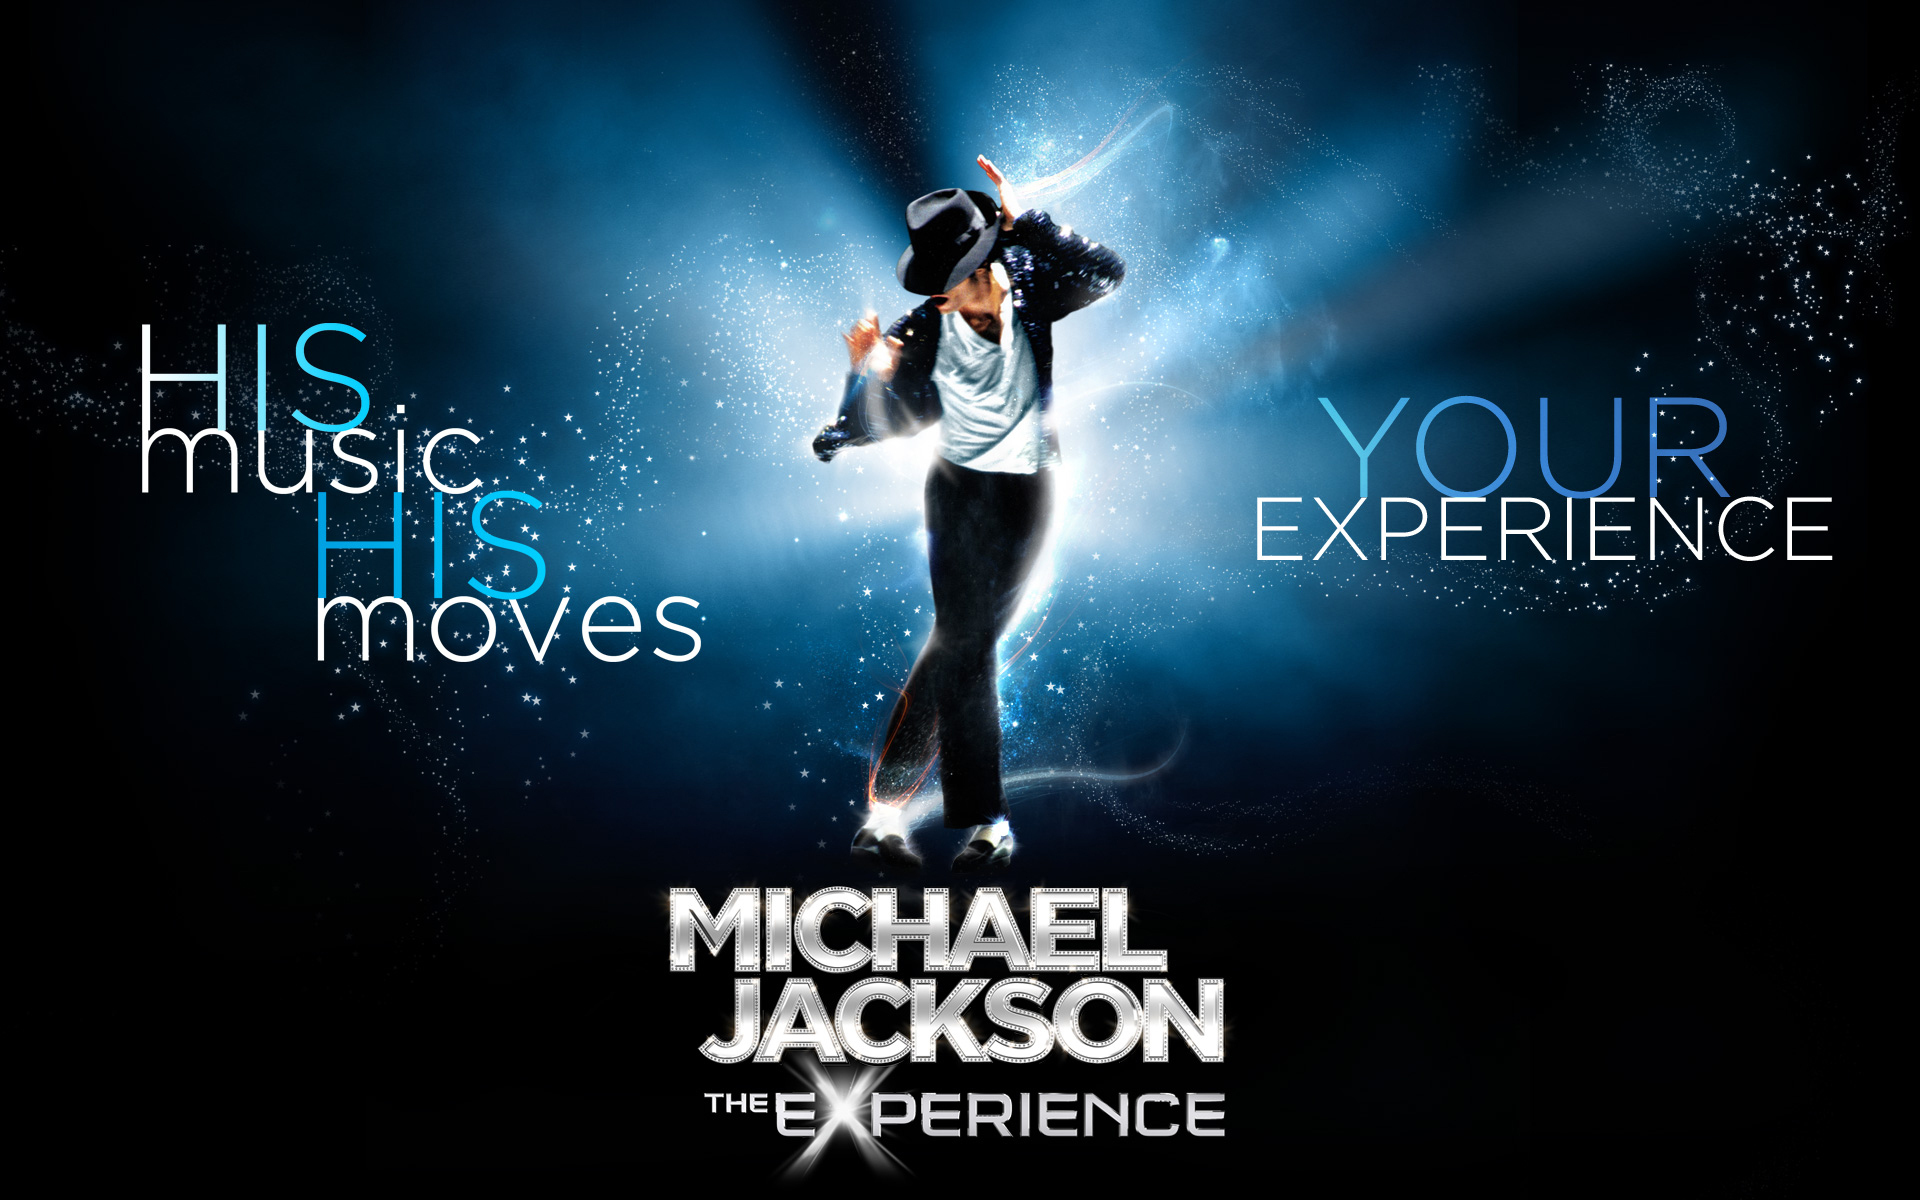 Michael Jackson Wallpapers HD moves